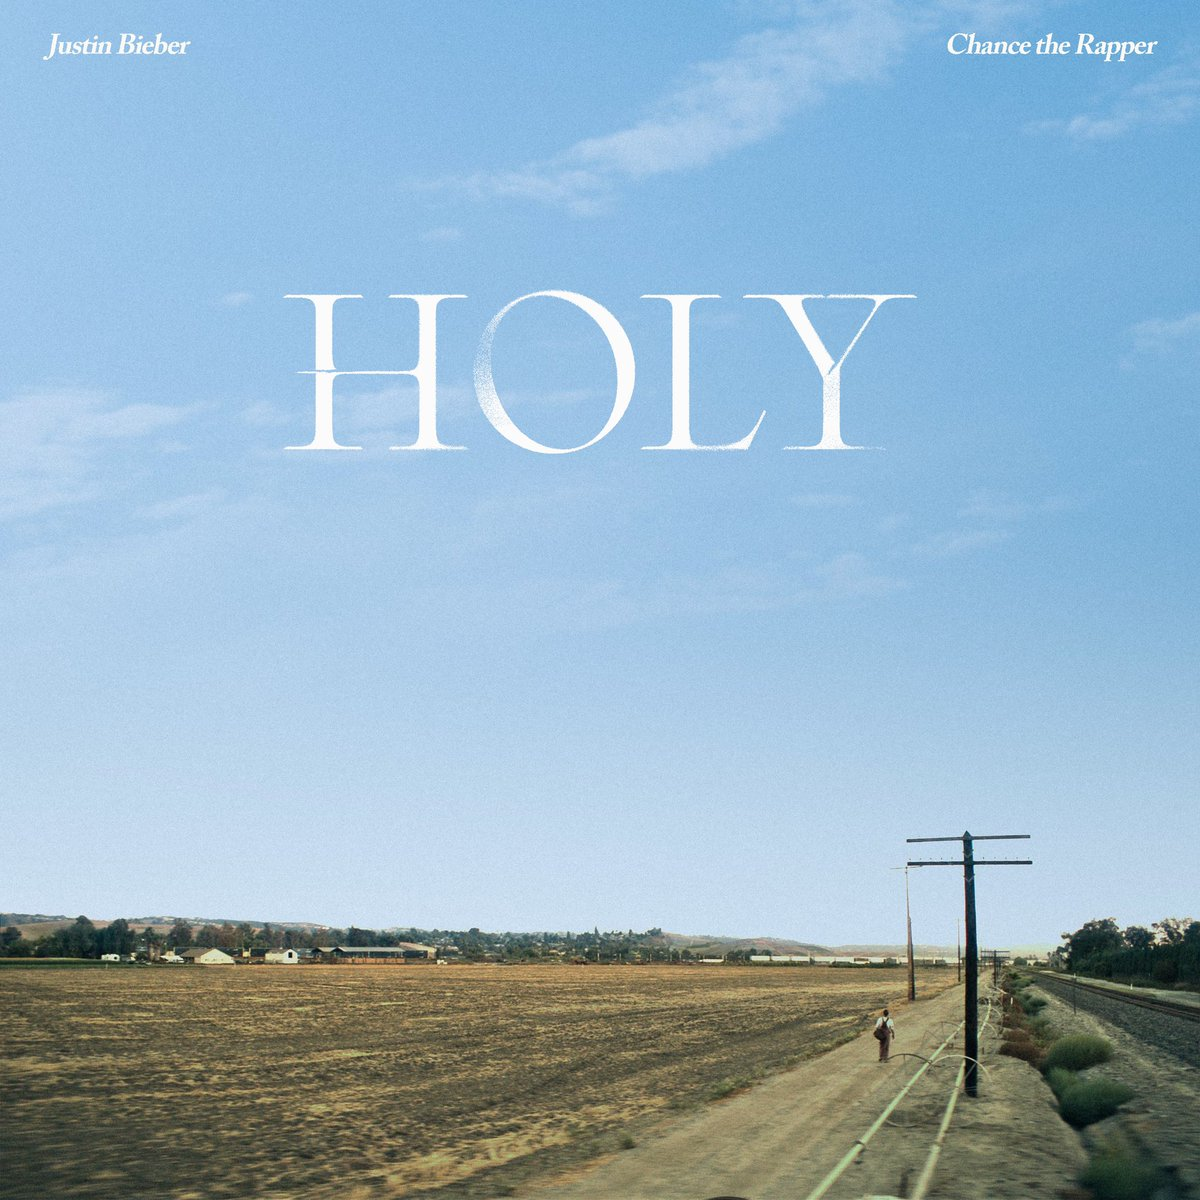 New era. New single. It's begins. #HOLY this Friday ft. @chancetherapper jbsoon.com